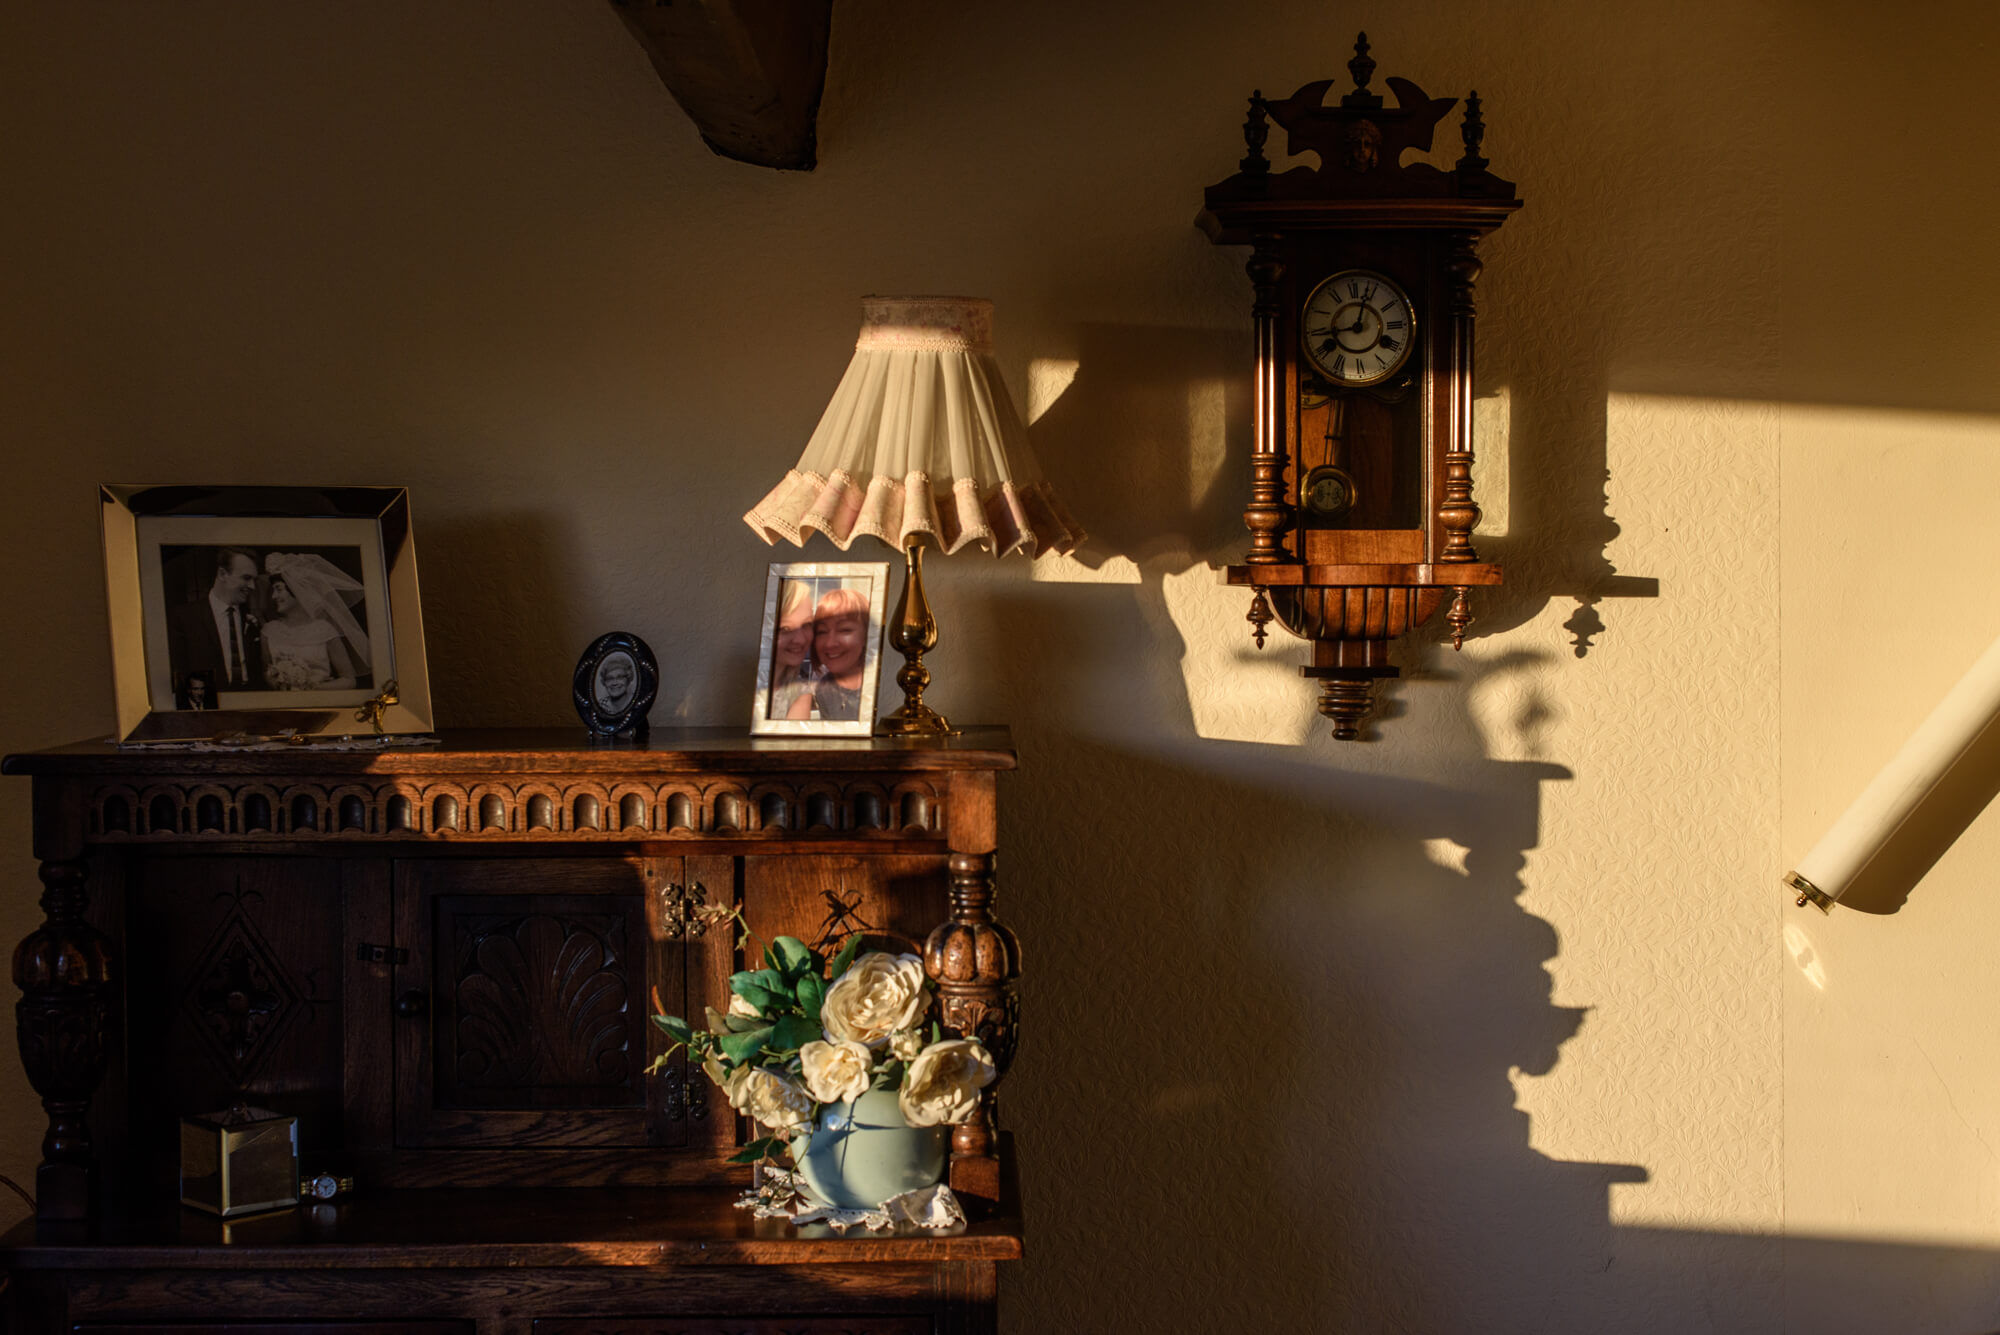 Alice Dempsey goodnight god bless sunlight on a white wall in a house the south west collective of photography ltd